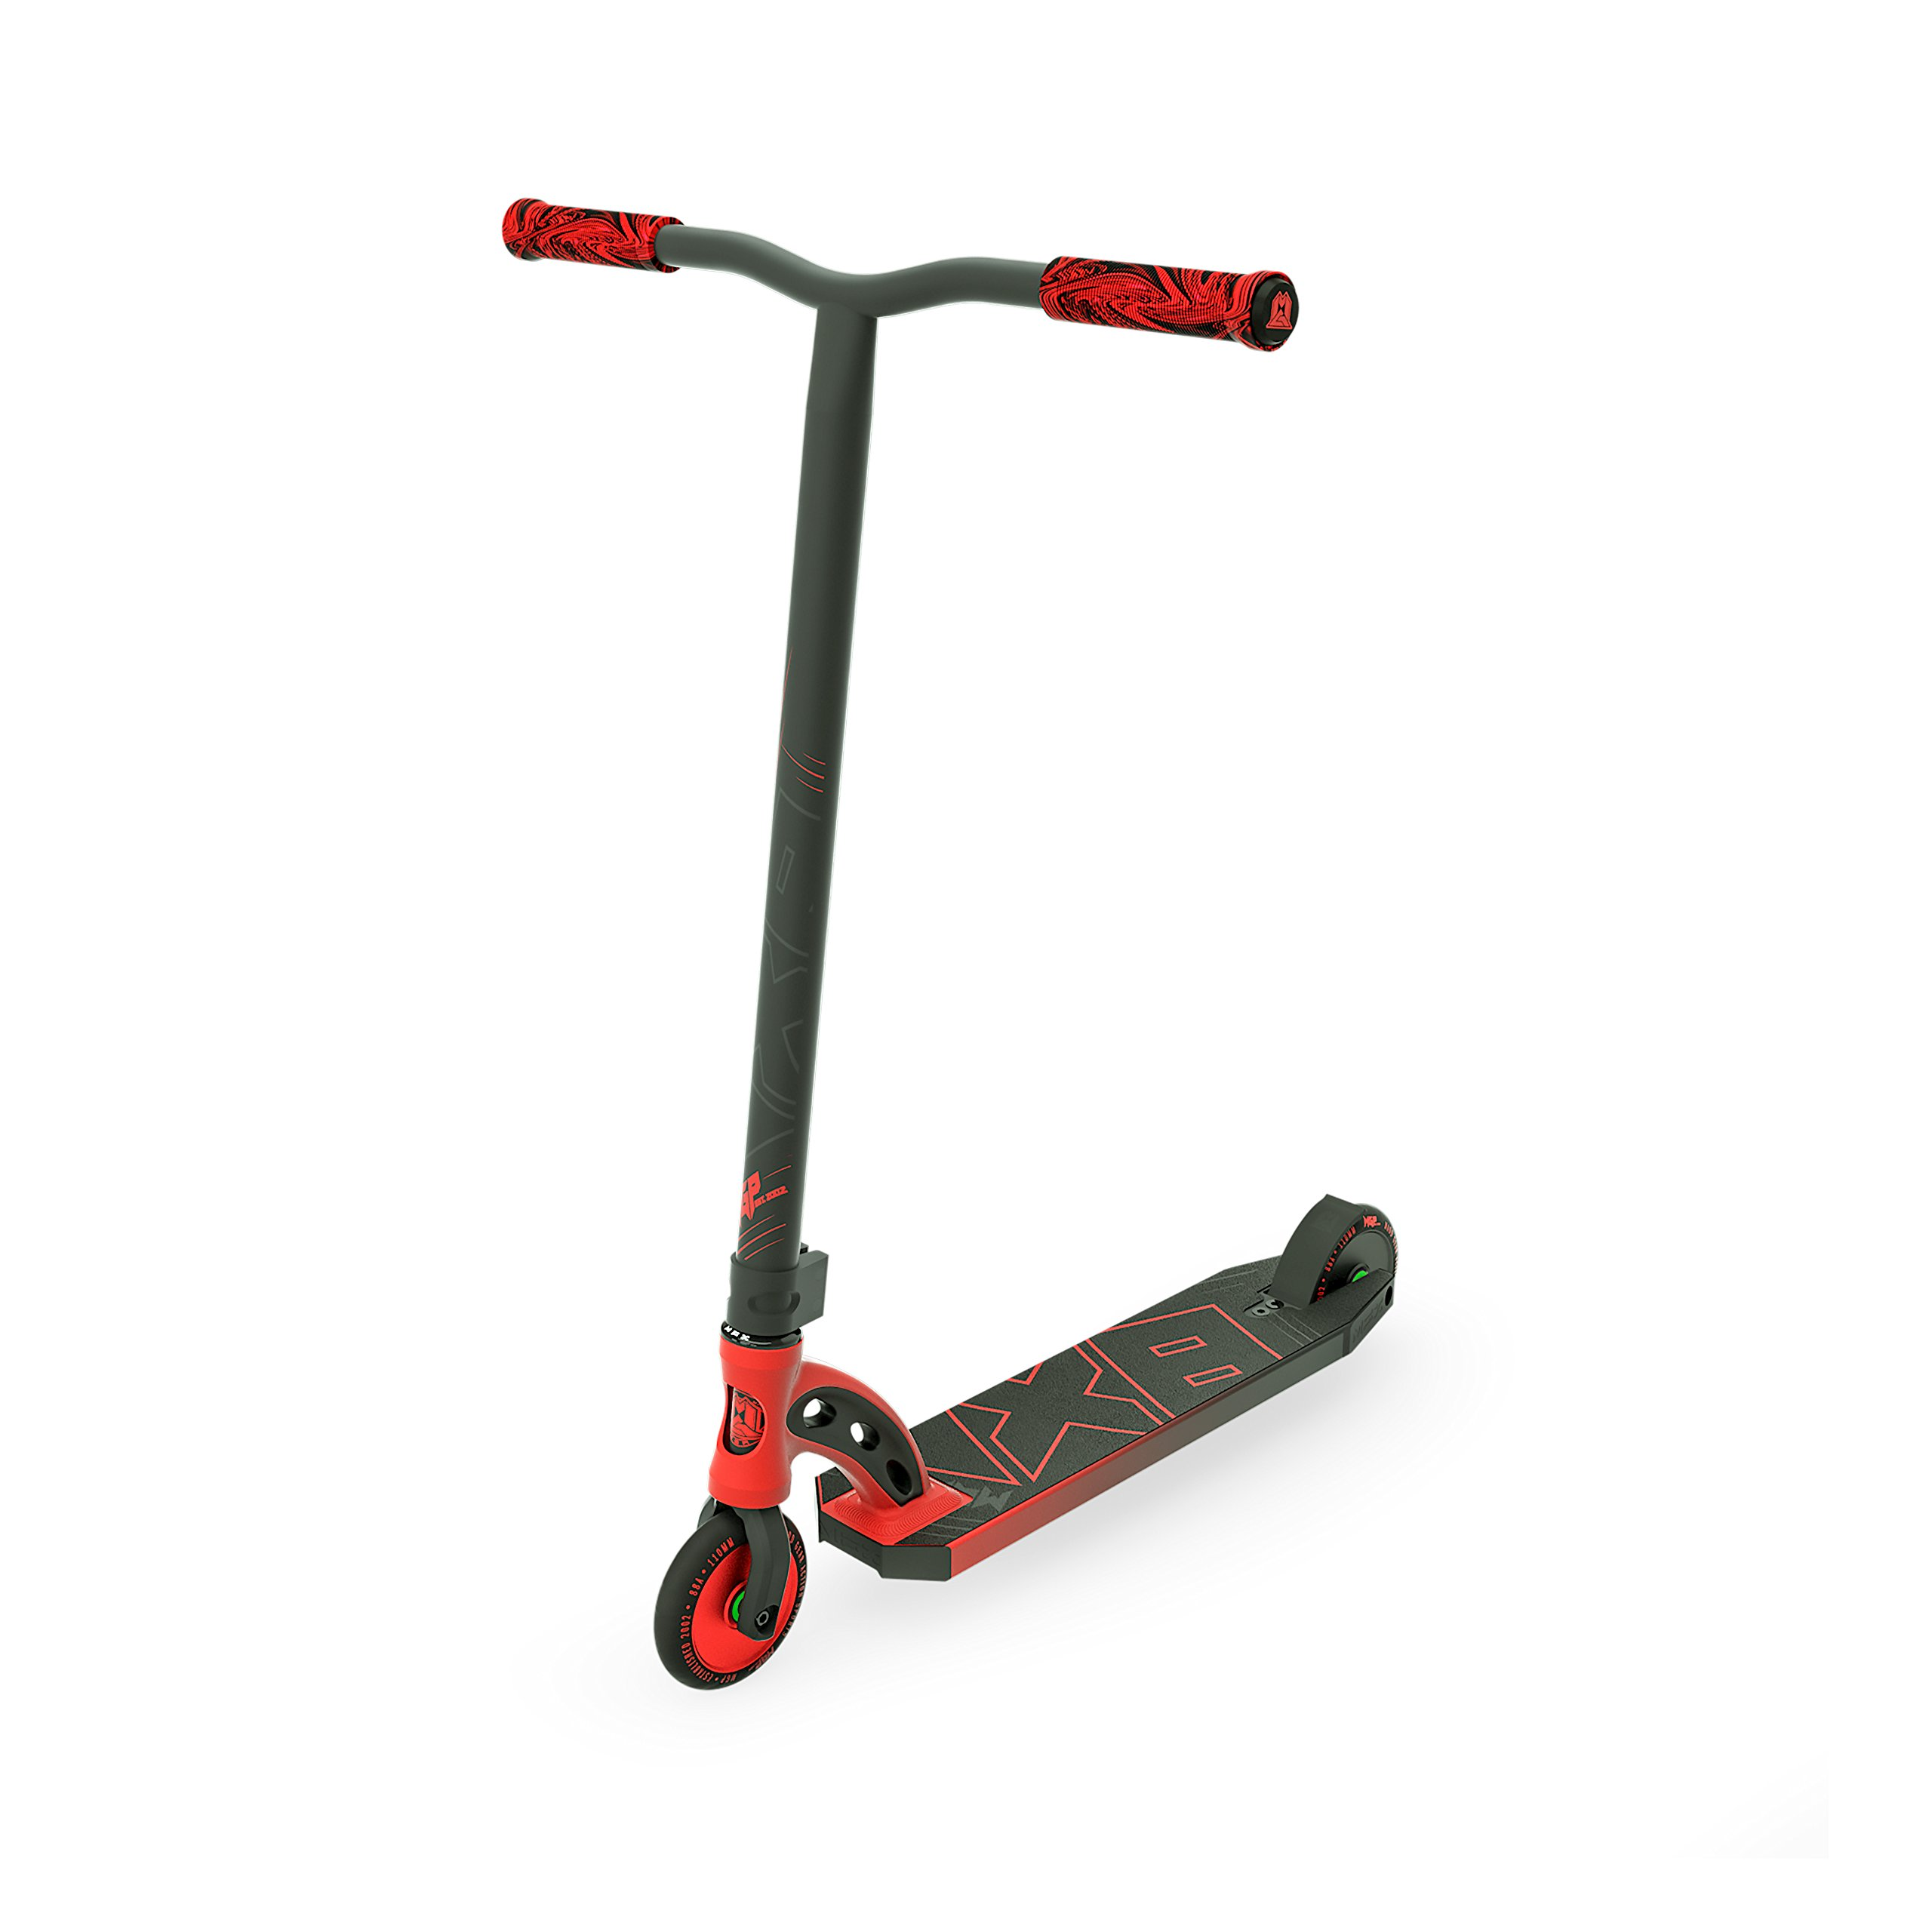 Madd Gear MGP VX8 Freestyle Pro Scooter - Red/Black by Madd Gear